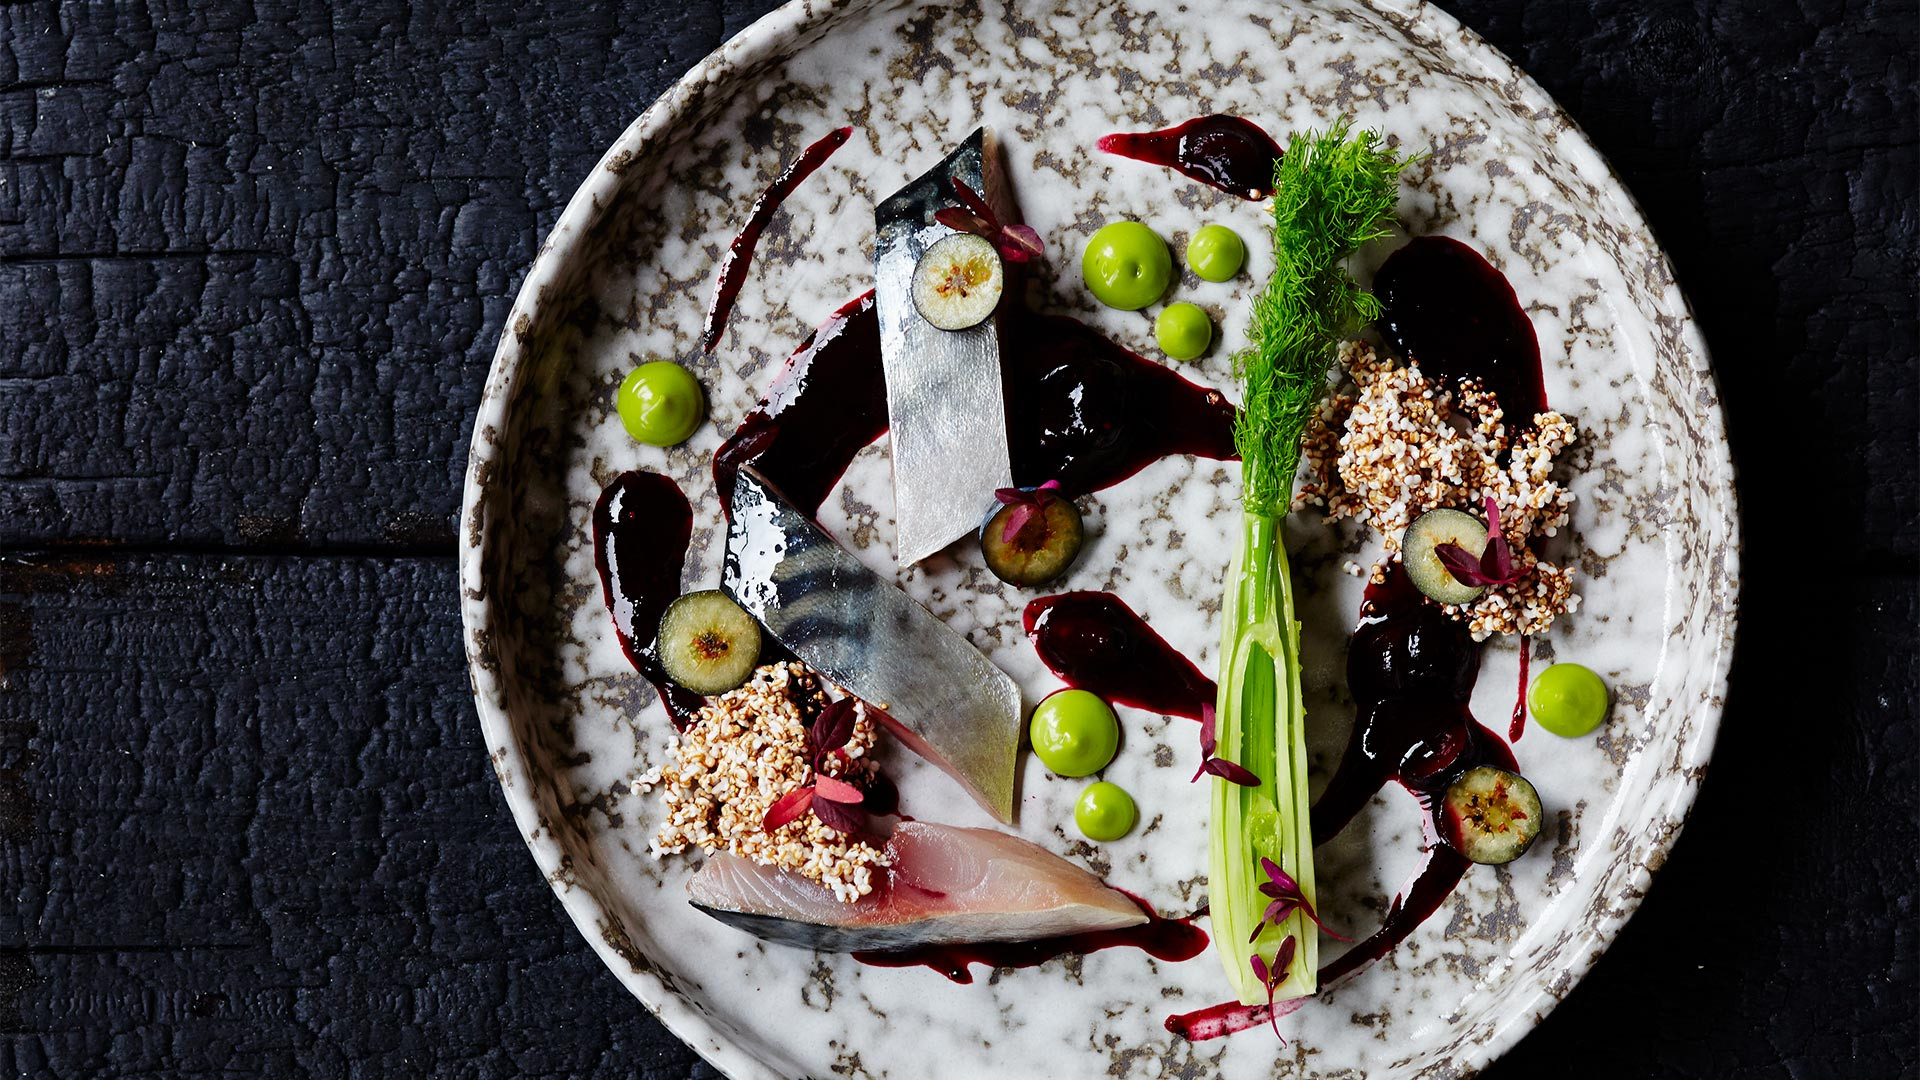 Magpie's characteristic pared-back cuisine